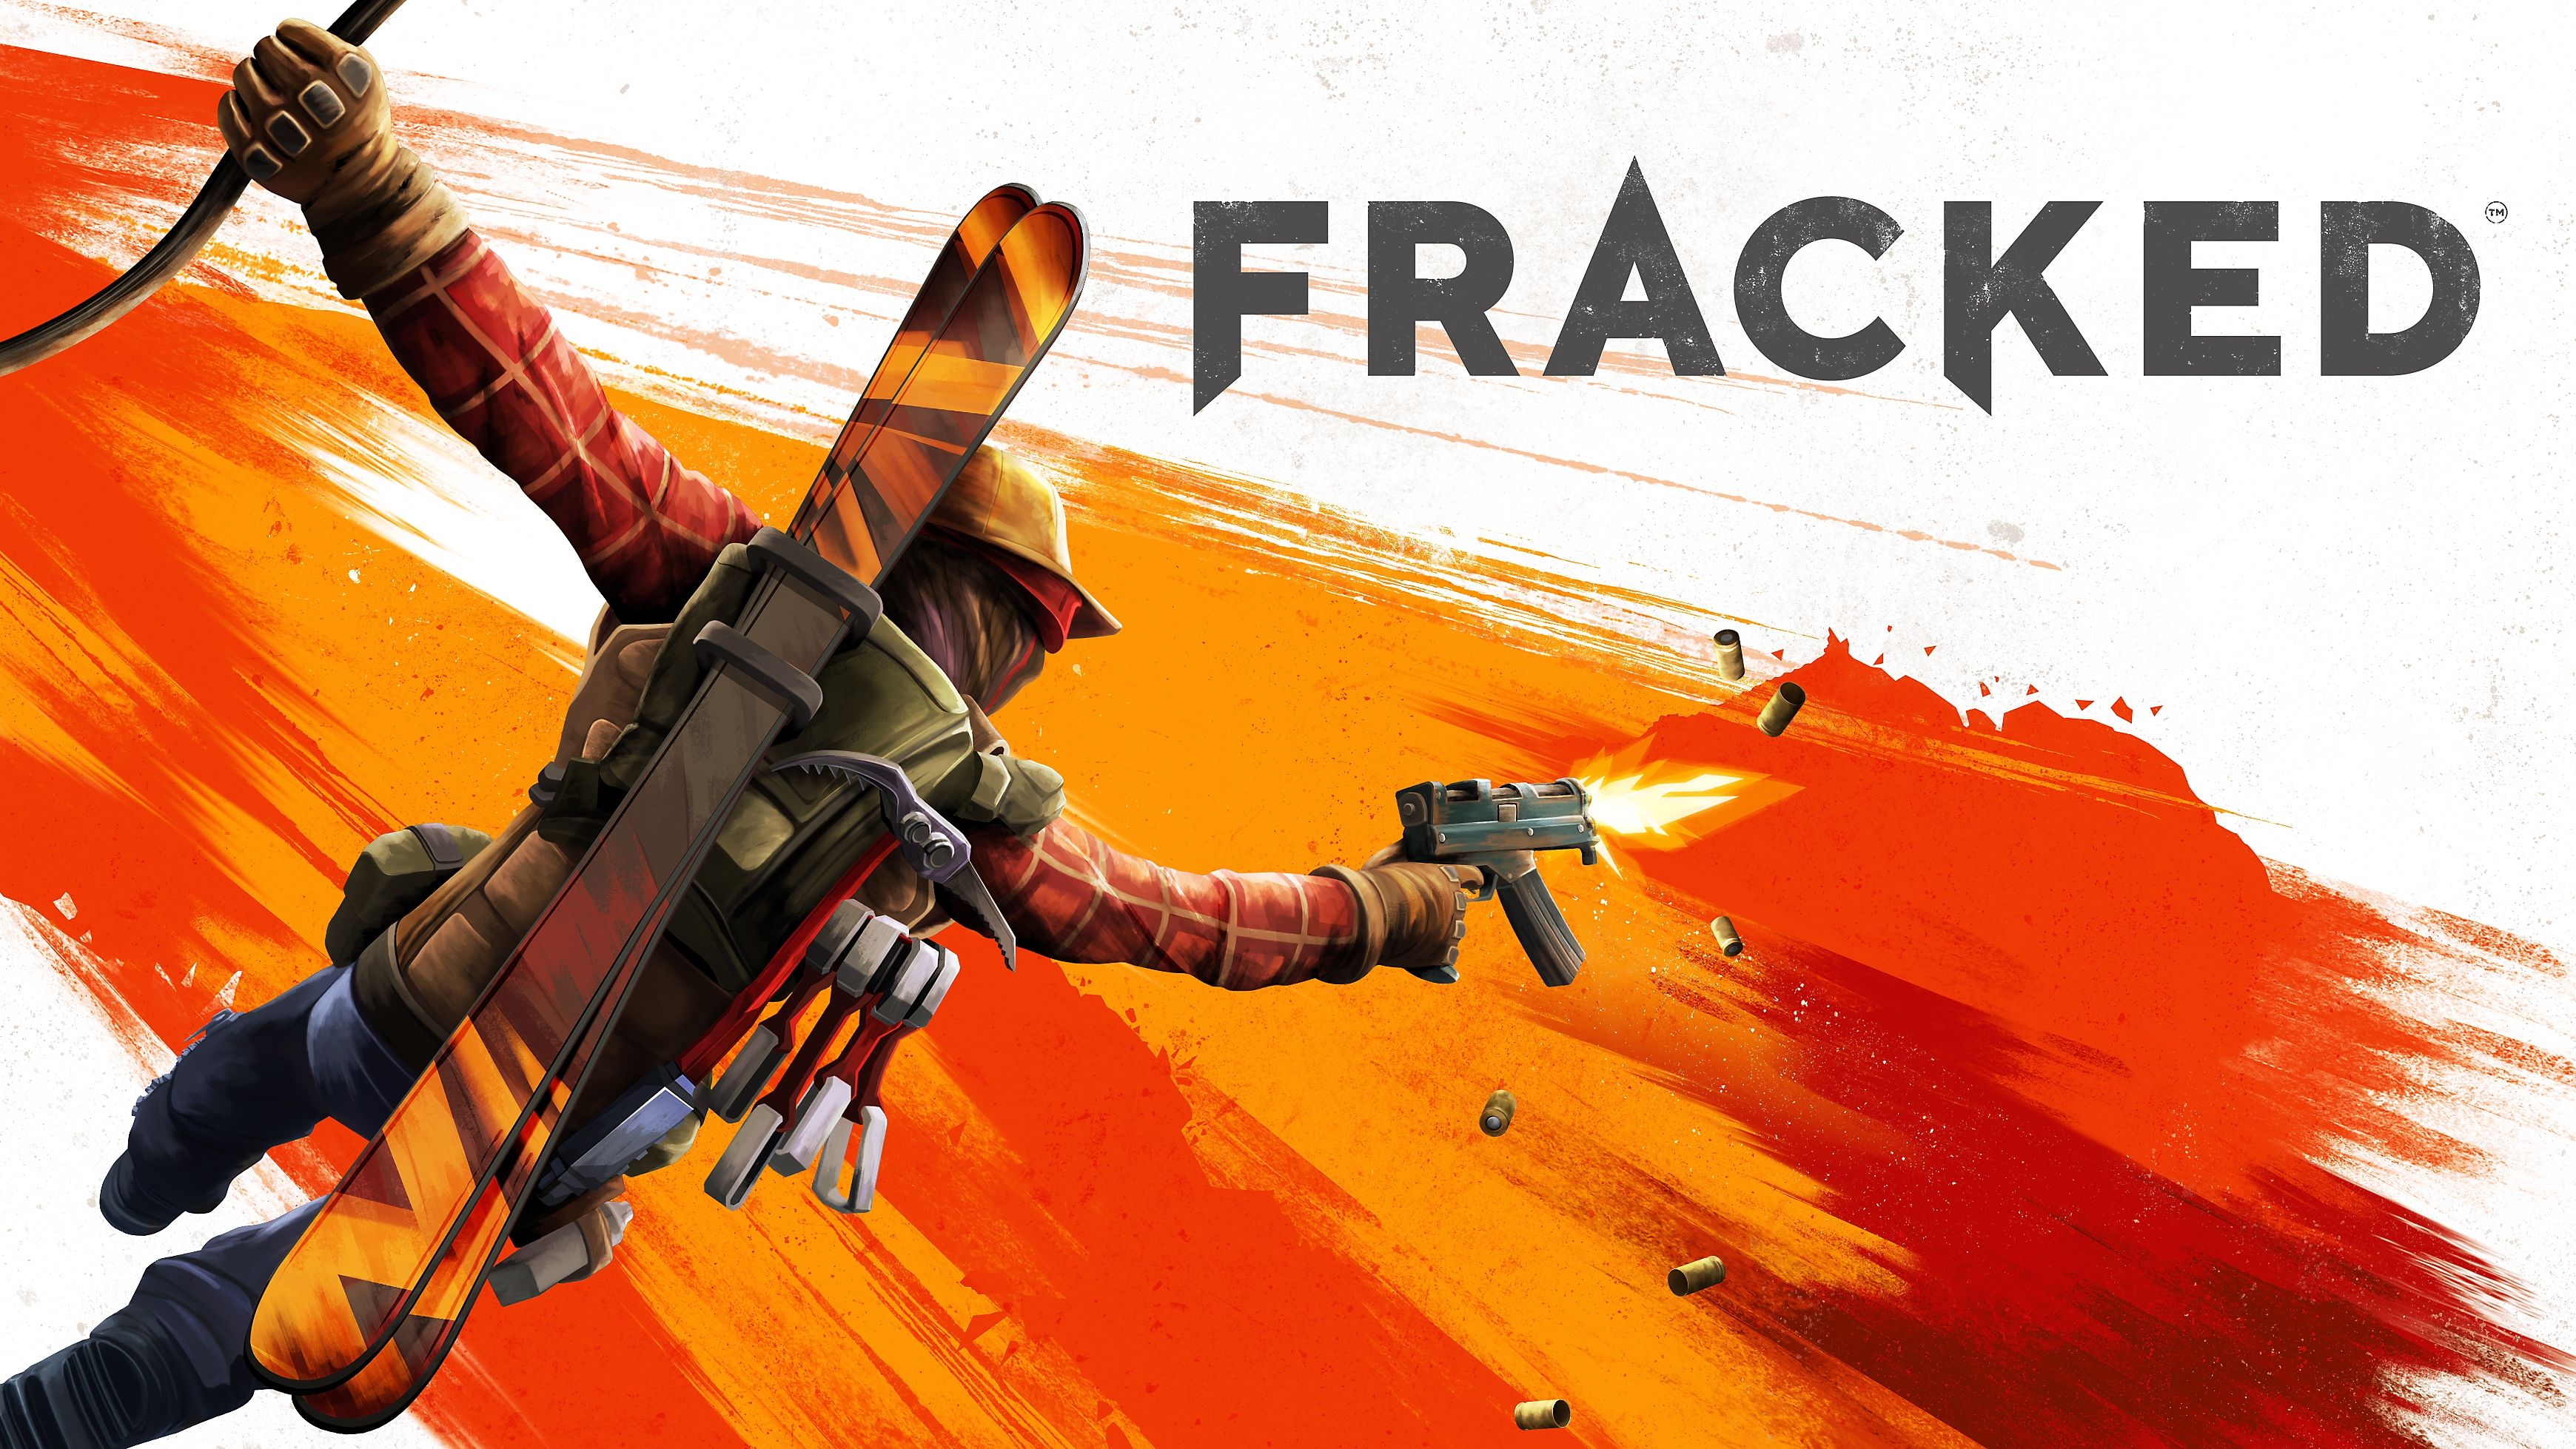 Fracked screenshot